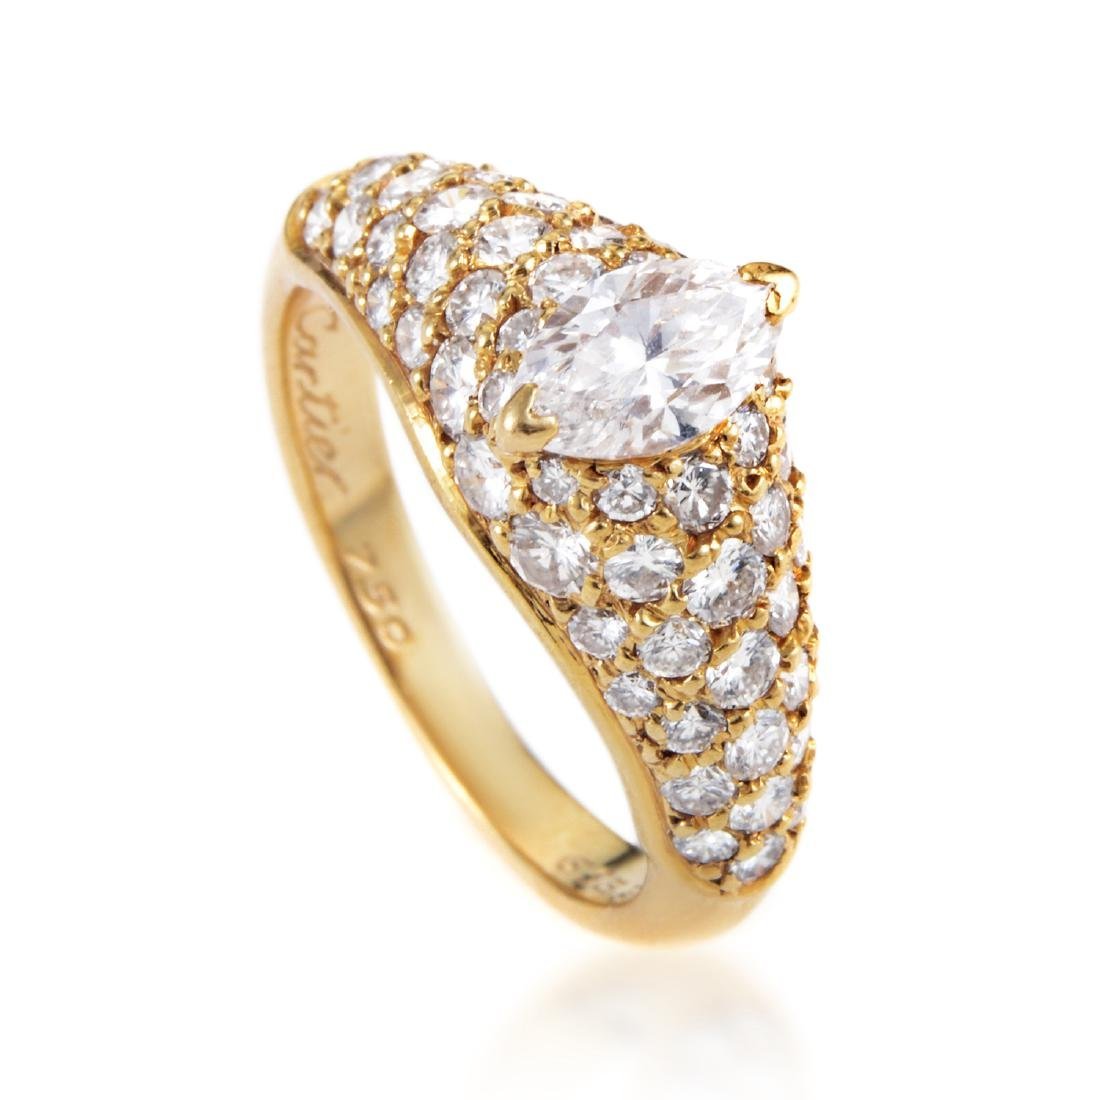 Cartier 18K Gold Marquise Diamond Engagement Ring